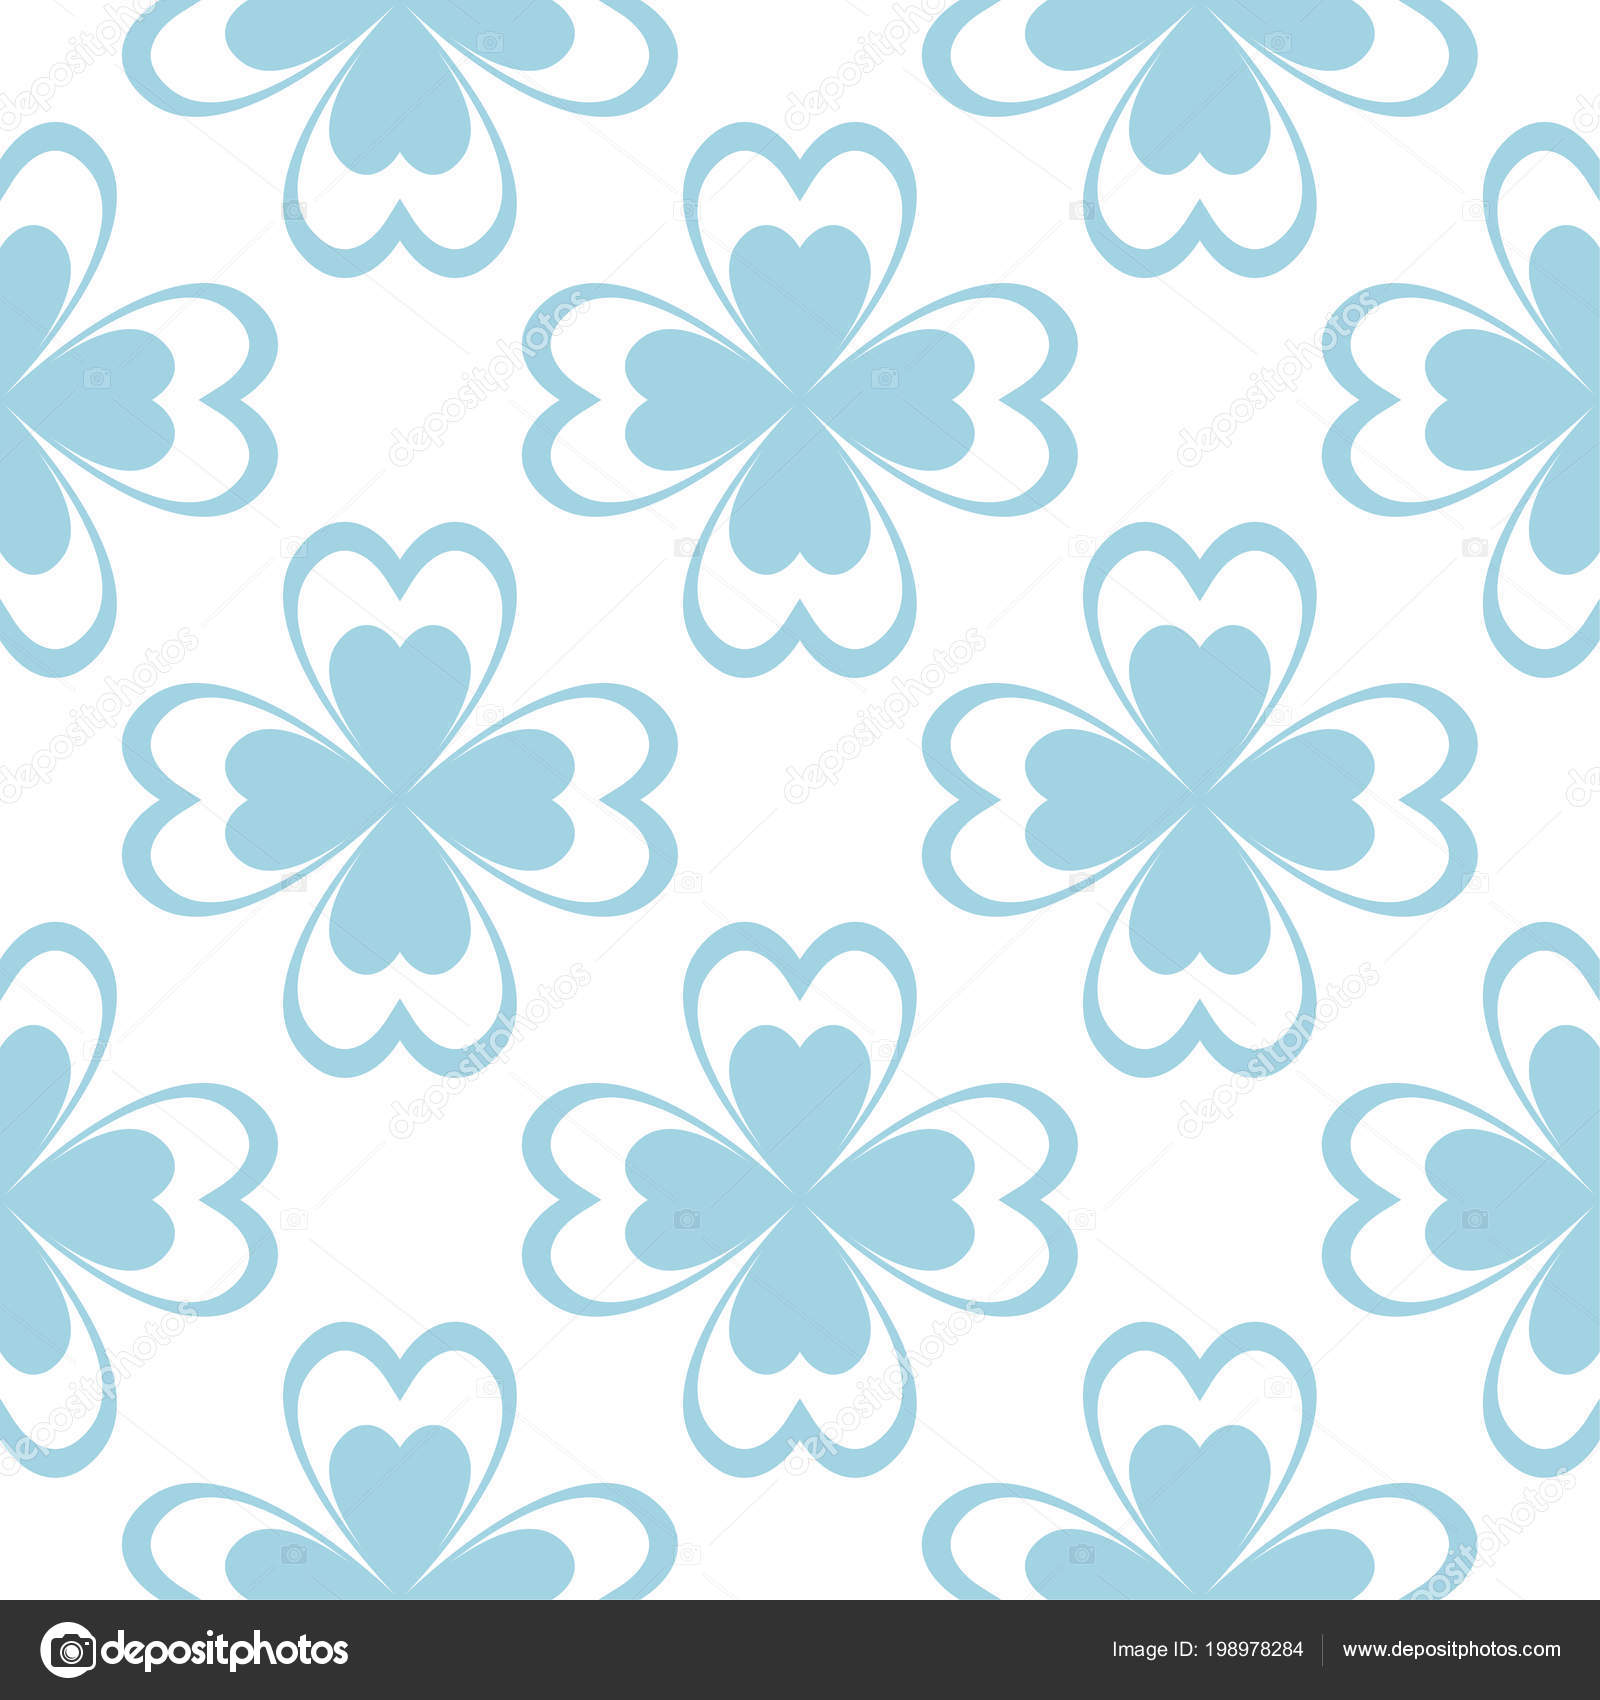 Floral Colored Seamless Pattern Blue White Background Fower Elements